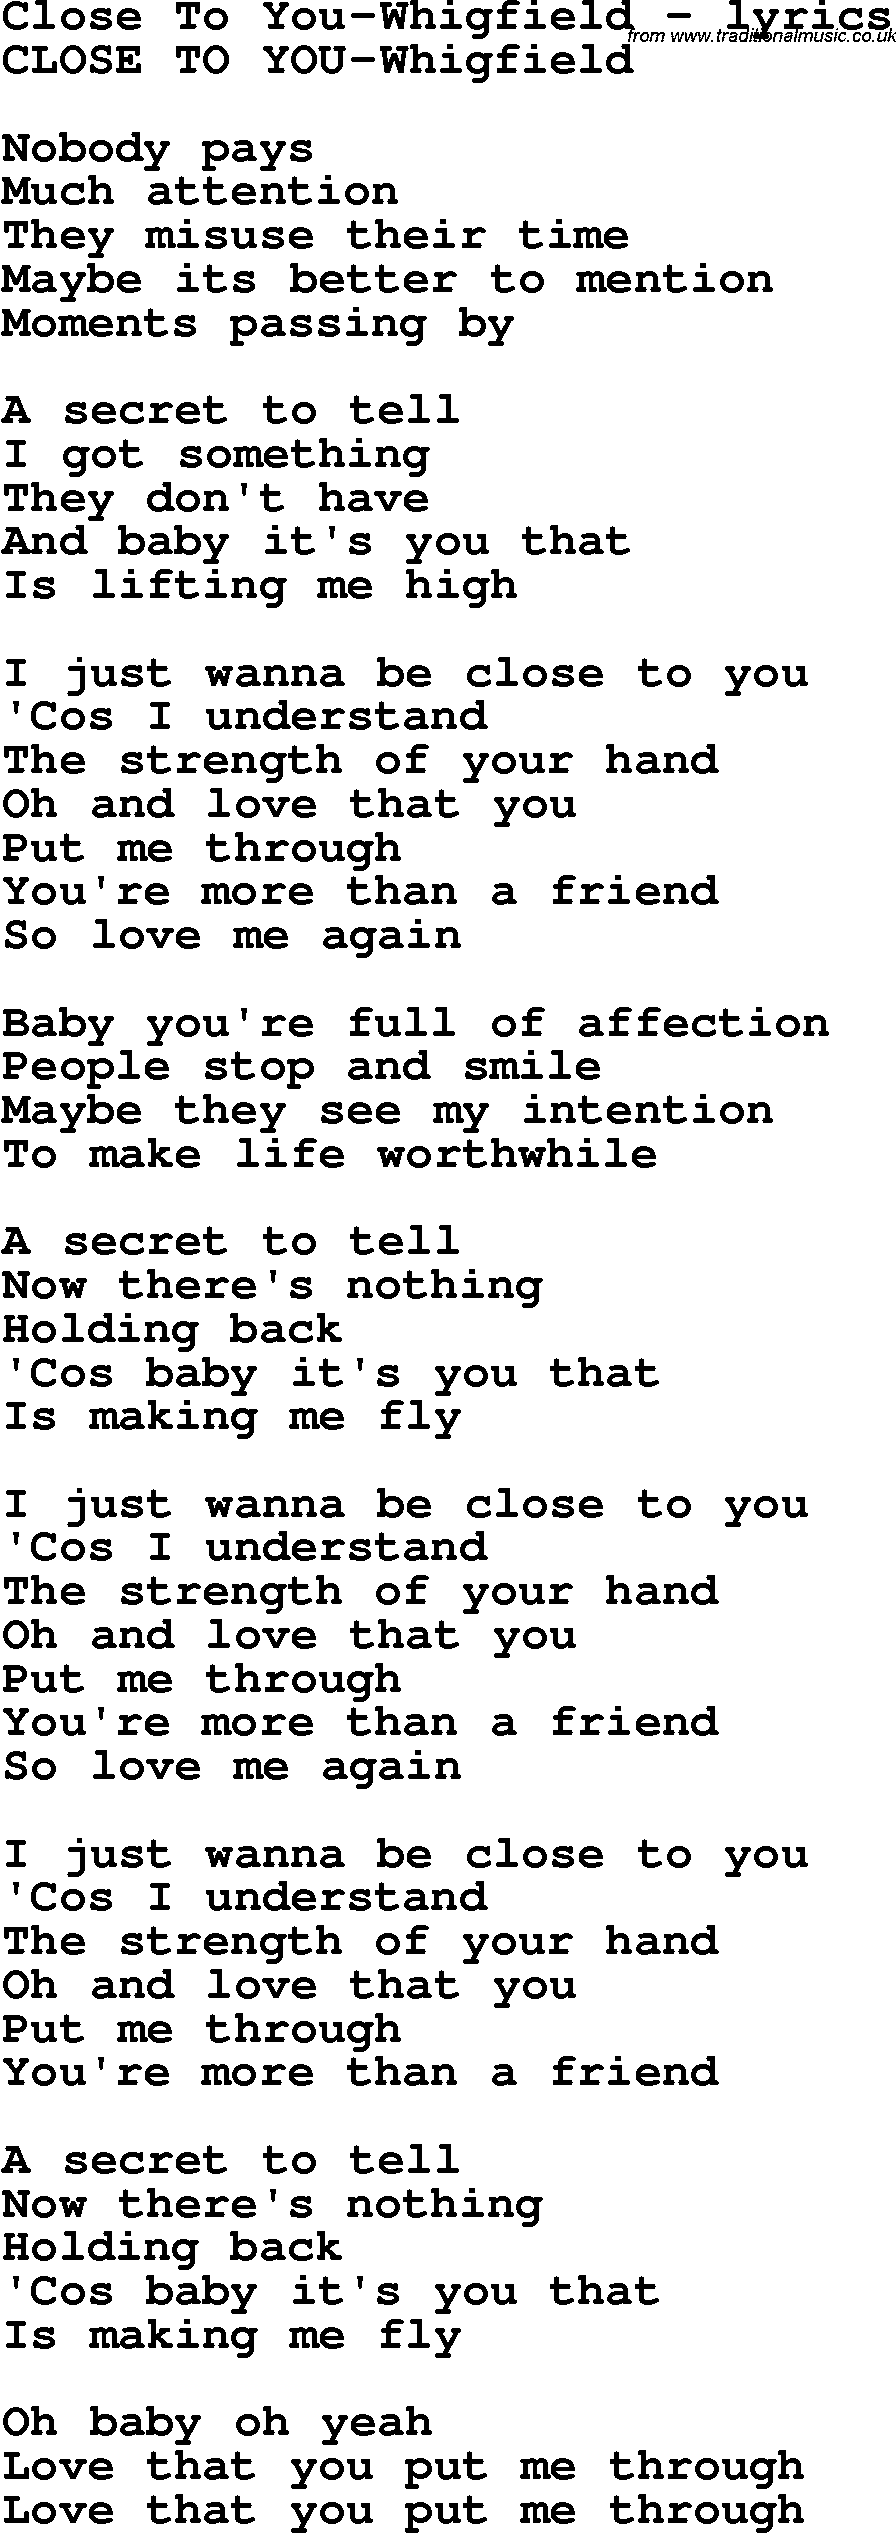 Whigfield - Close To You Lyrics | MetroLyrics